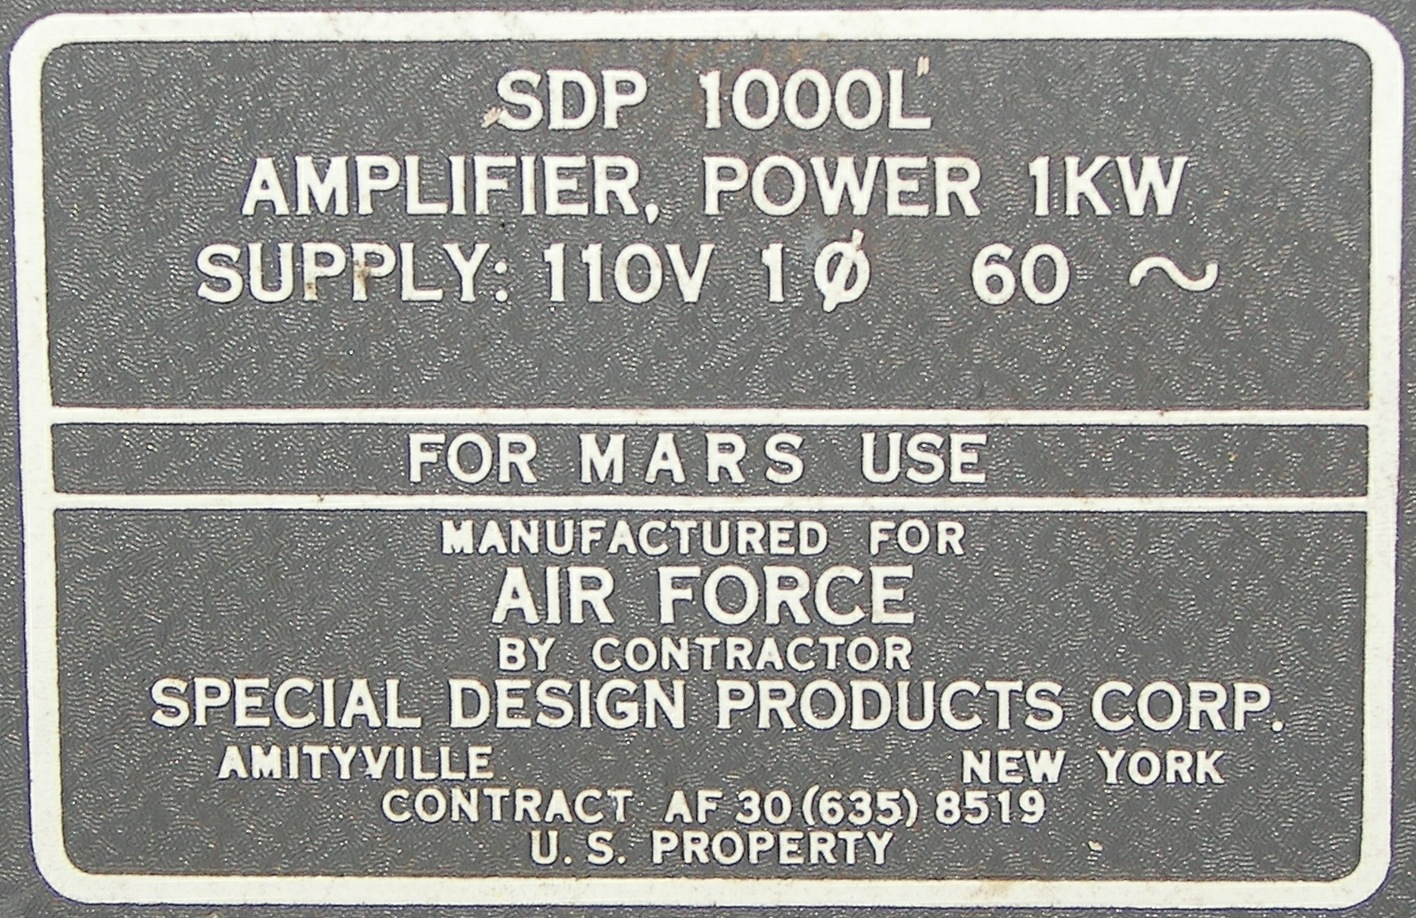 Special Design Products Corp  SDP 1000L Amplifier